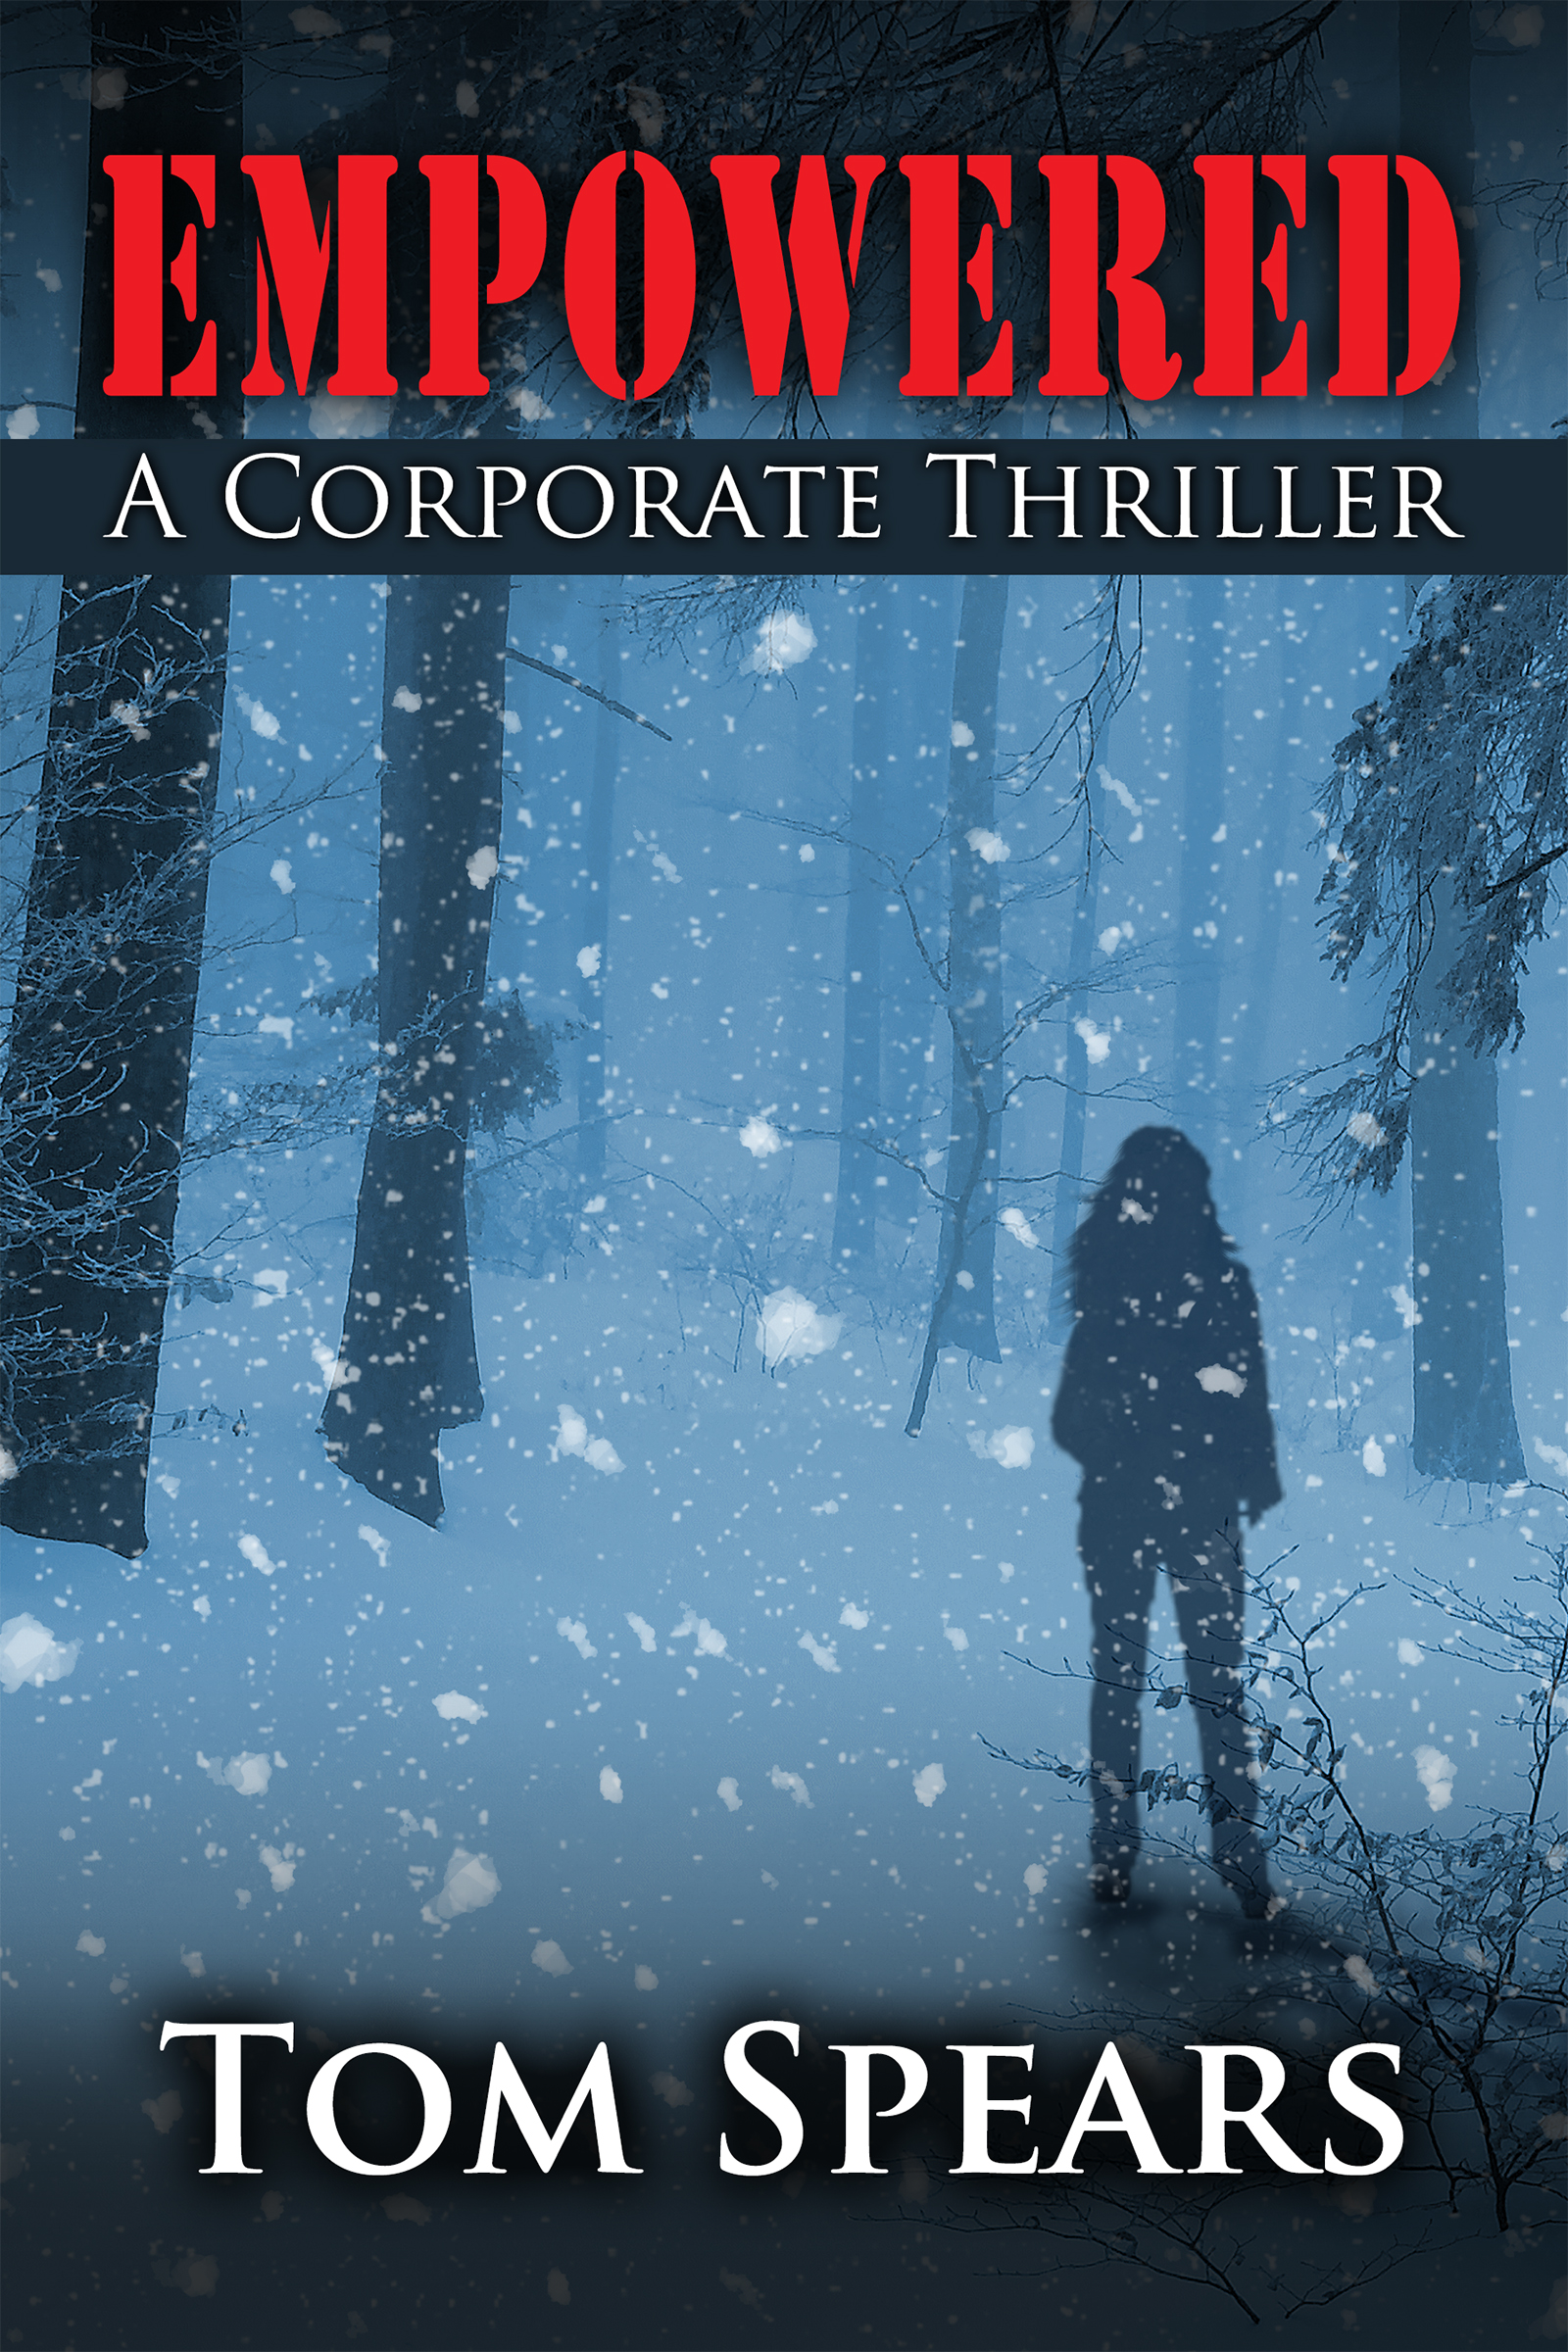 The cover of my latest novel. Get more info by clicking the image.